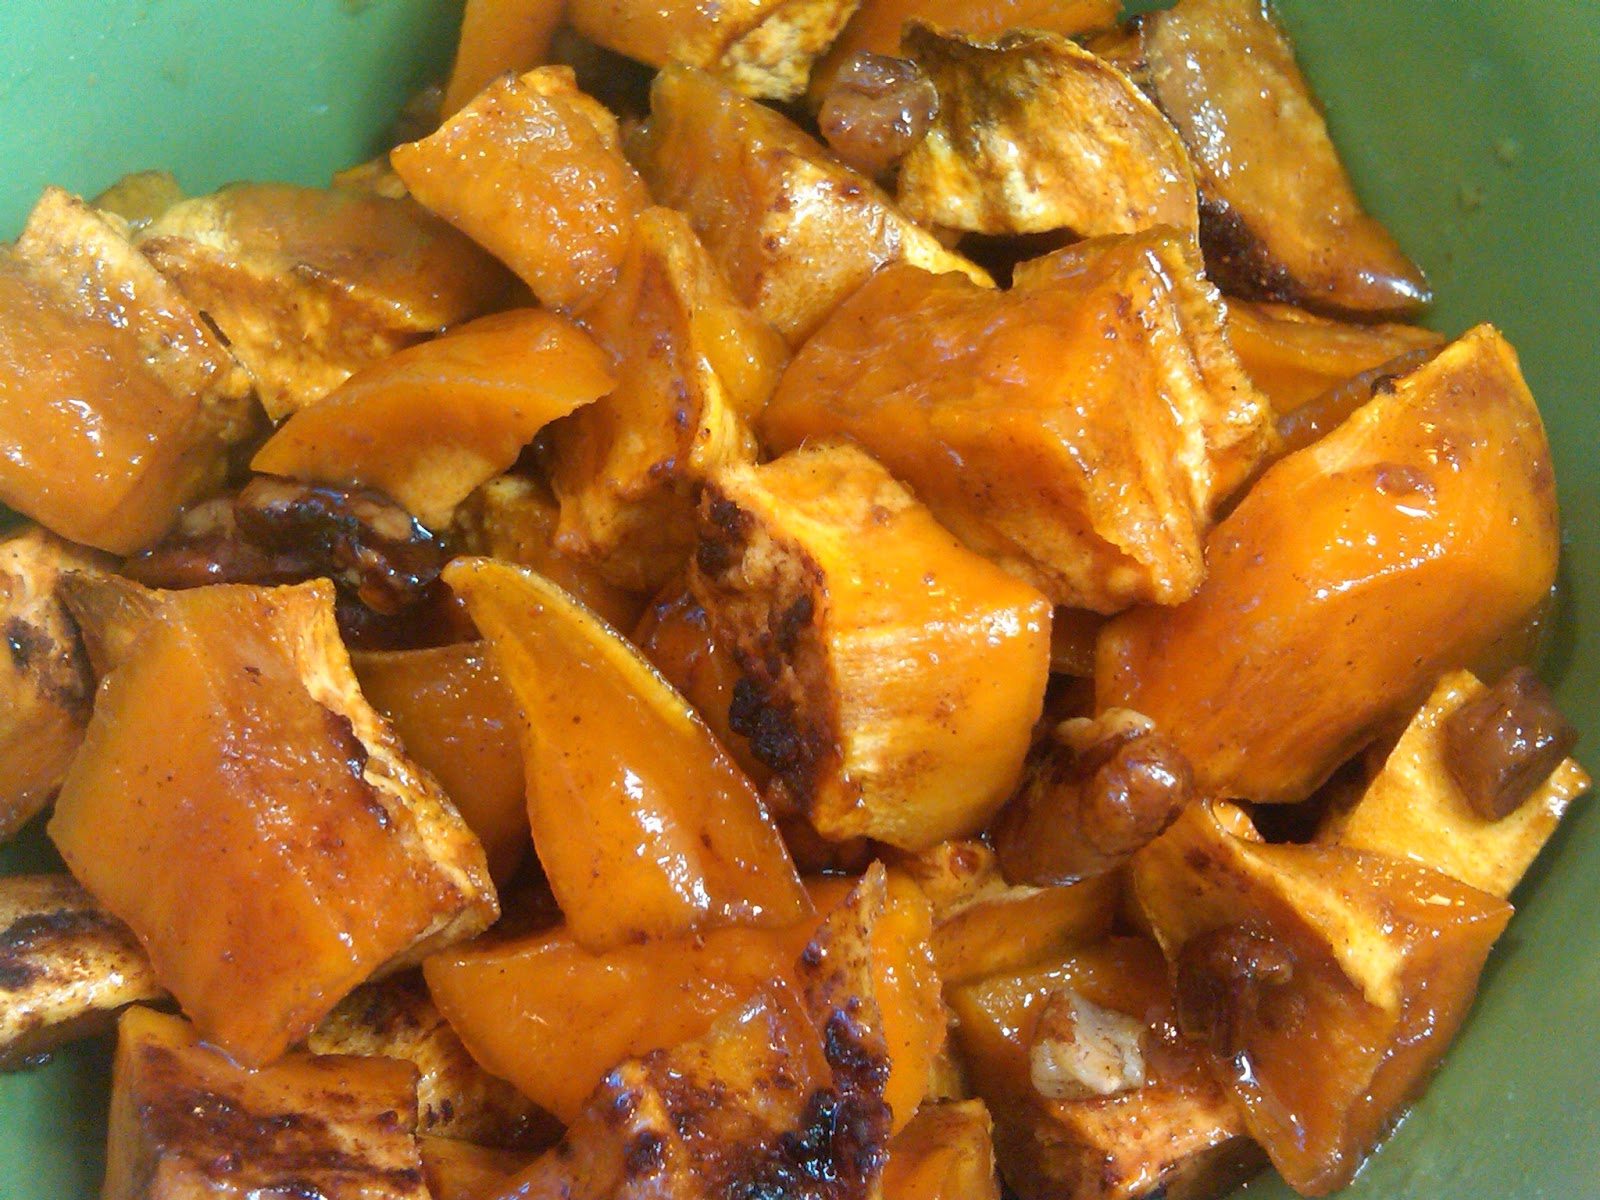 roasted sweet potatoes 2 sweet potatoes peeled and cubed 1